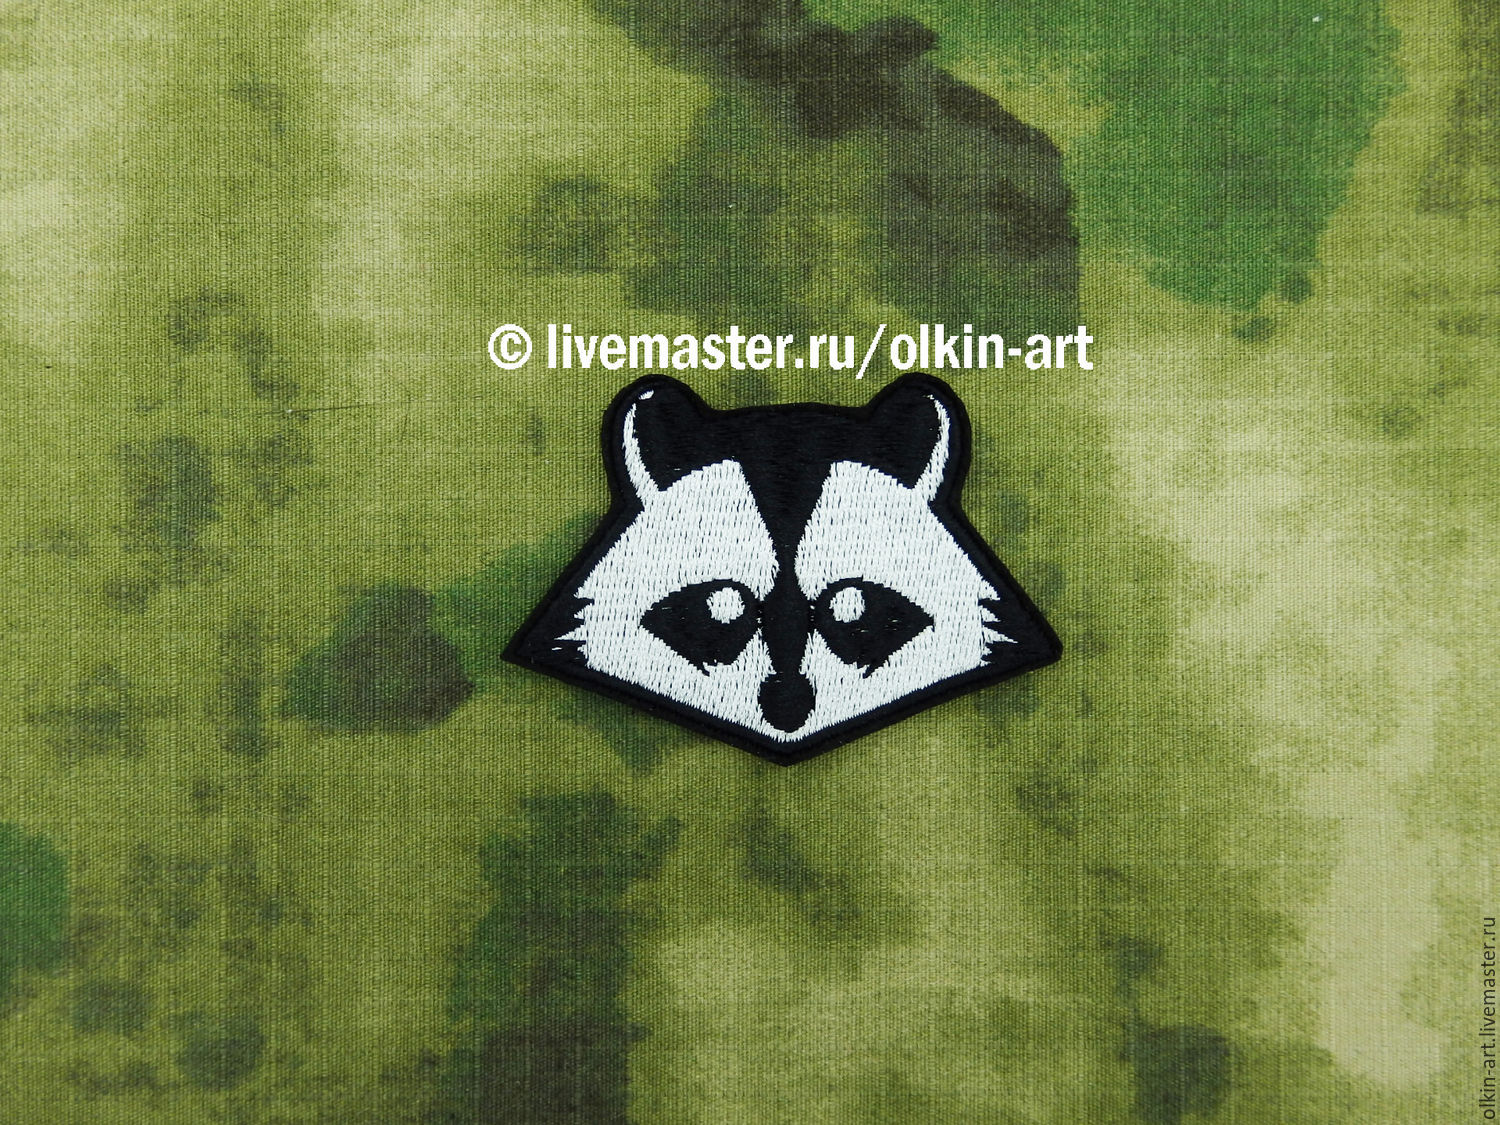 patch Raccoon (Krupowki) Beloretskiy stripe #Stripe #Chevron #Patch #Embroidery #Logo #Logo #Design #Patches #Patches #Patches #Capitialise